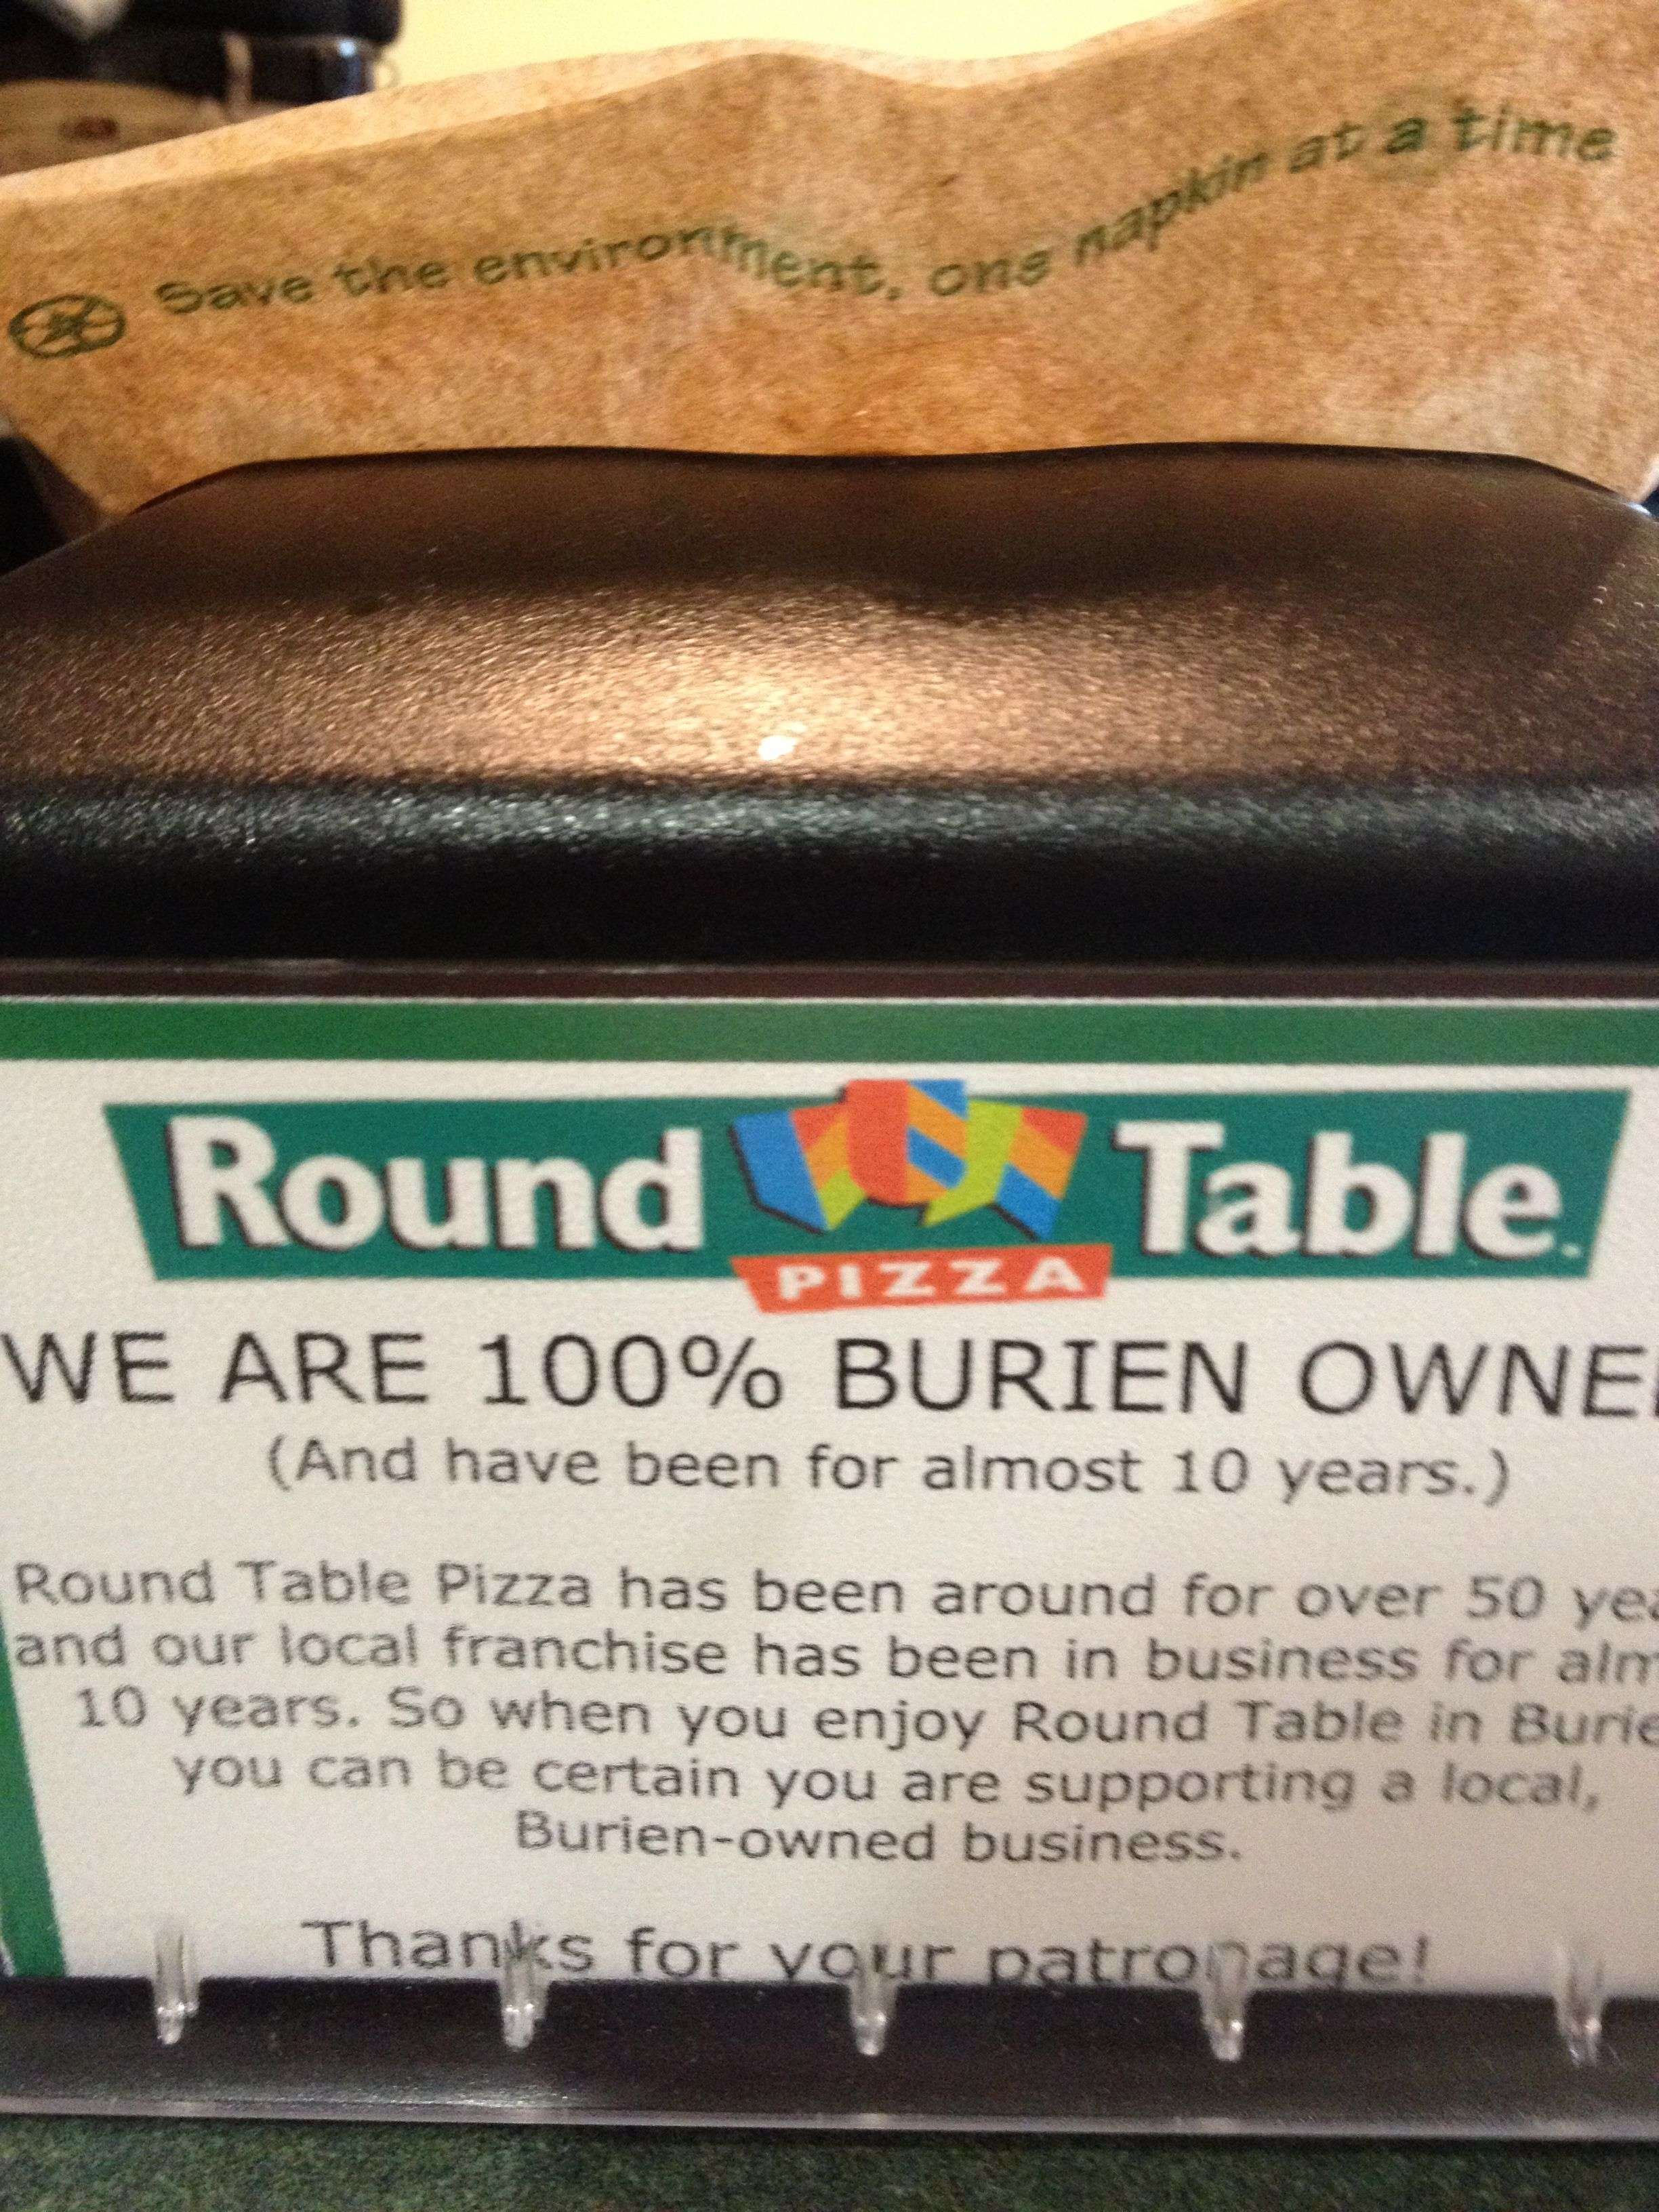 Locally Owned Burien Round Table Pizza Round Table Burien Round